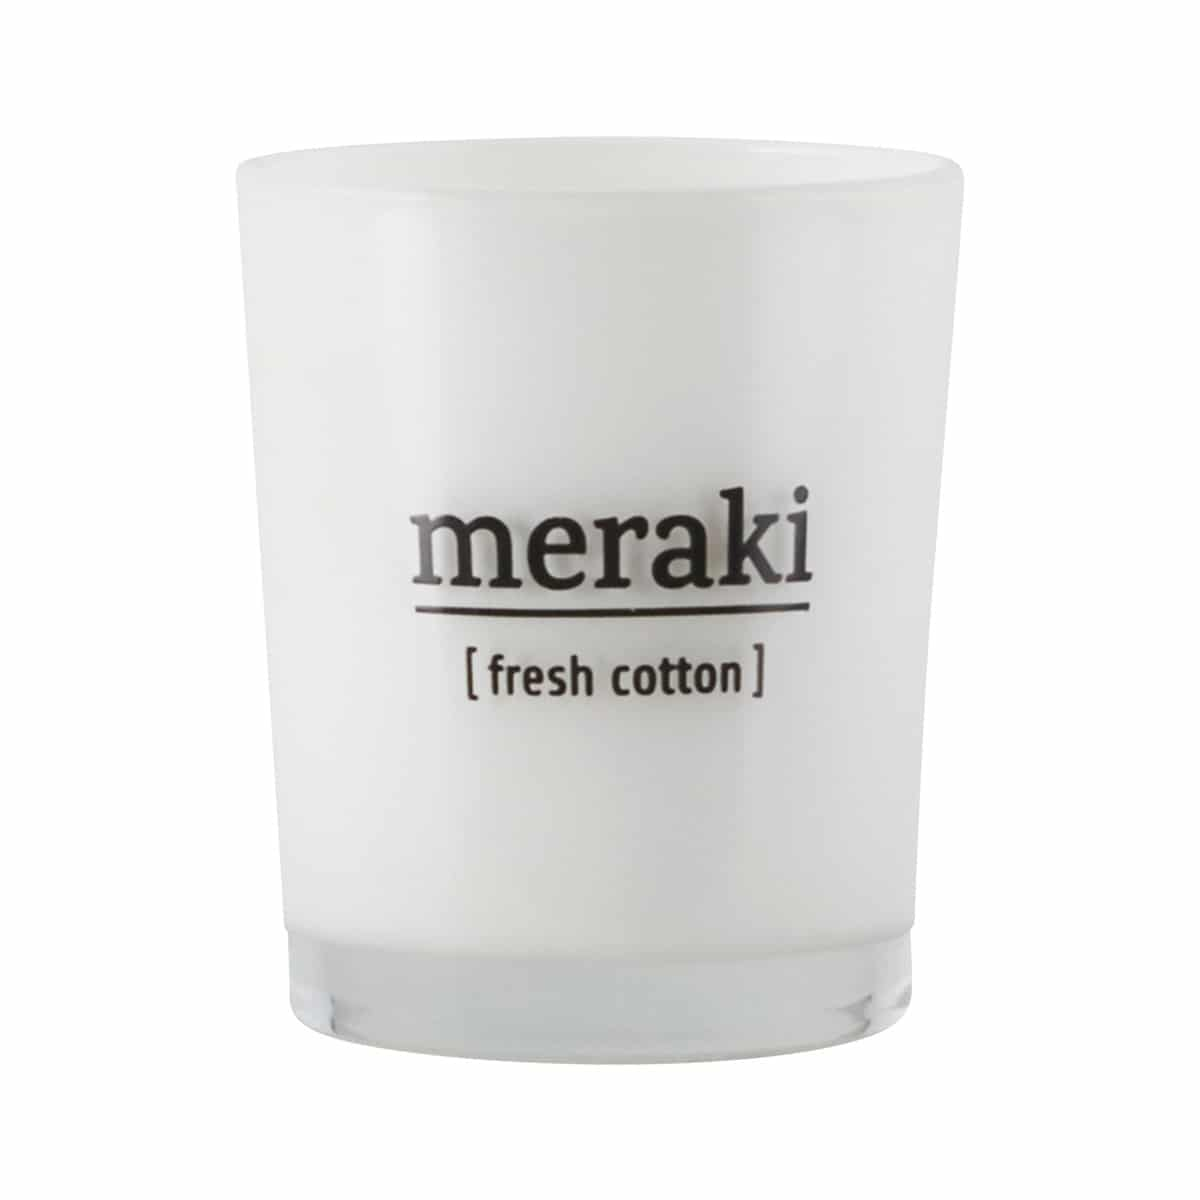 meraki geurkaars fresh cotton